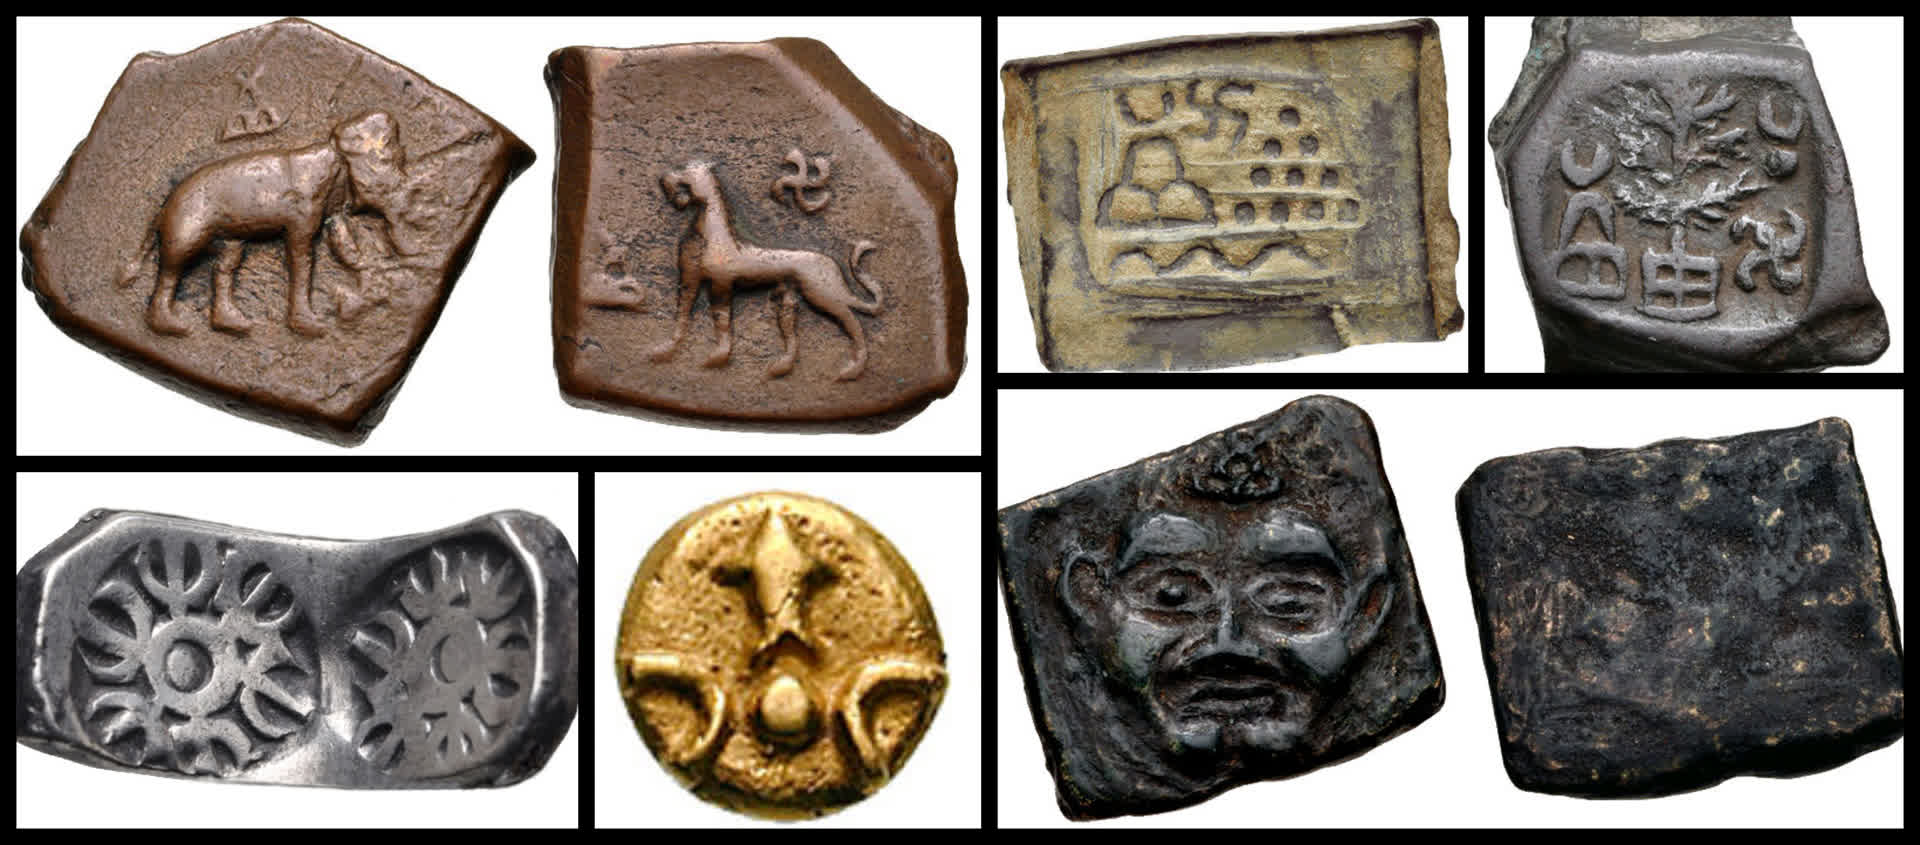 Coins unearthed from Taxila